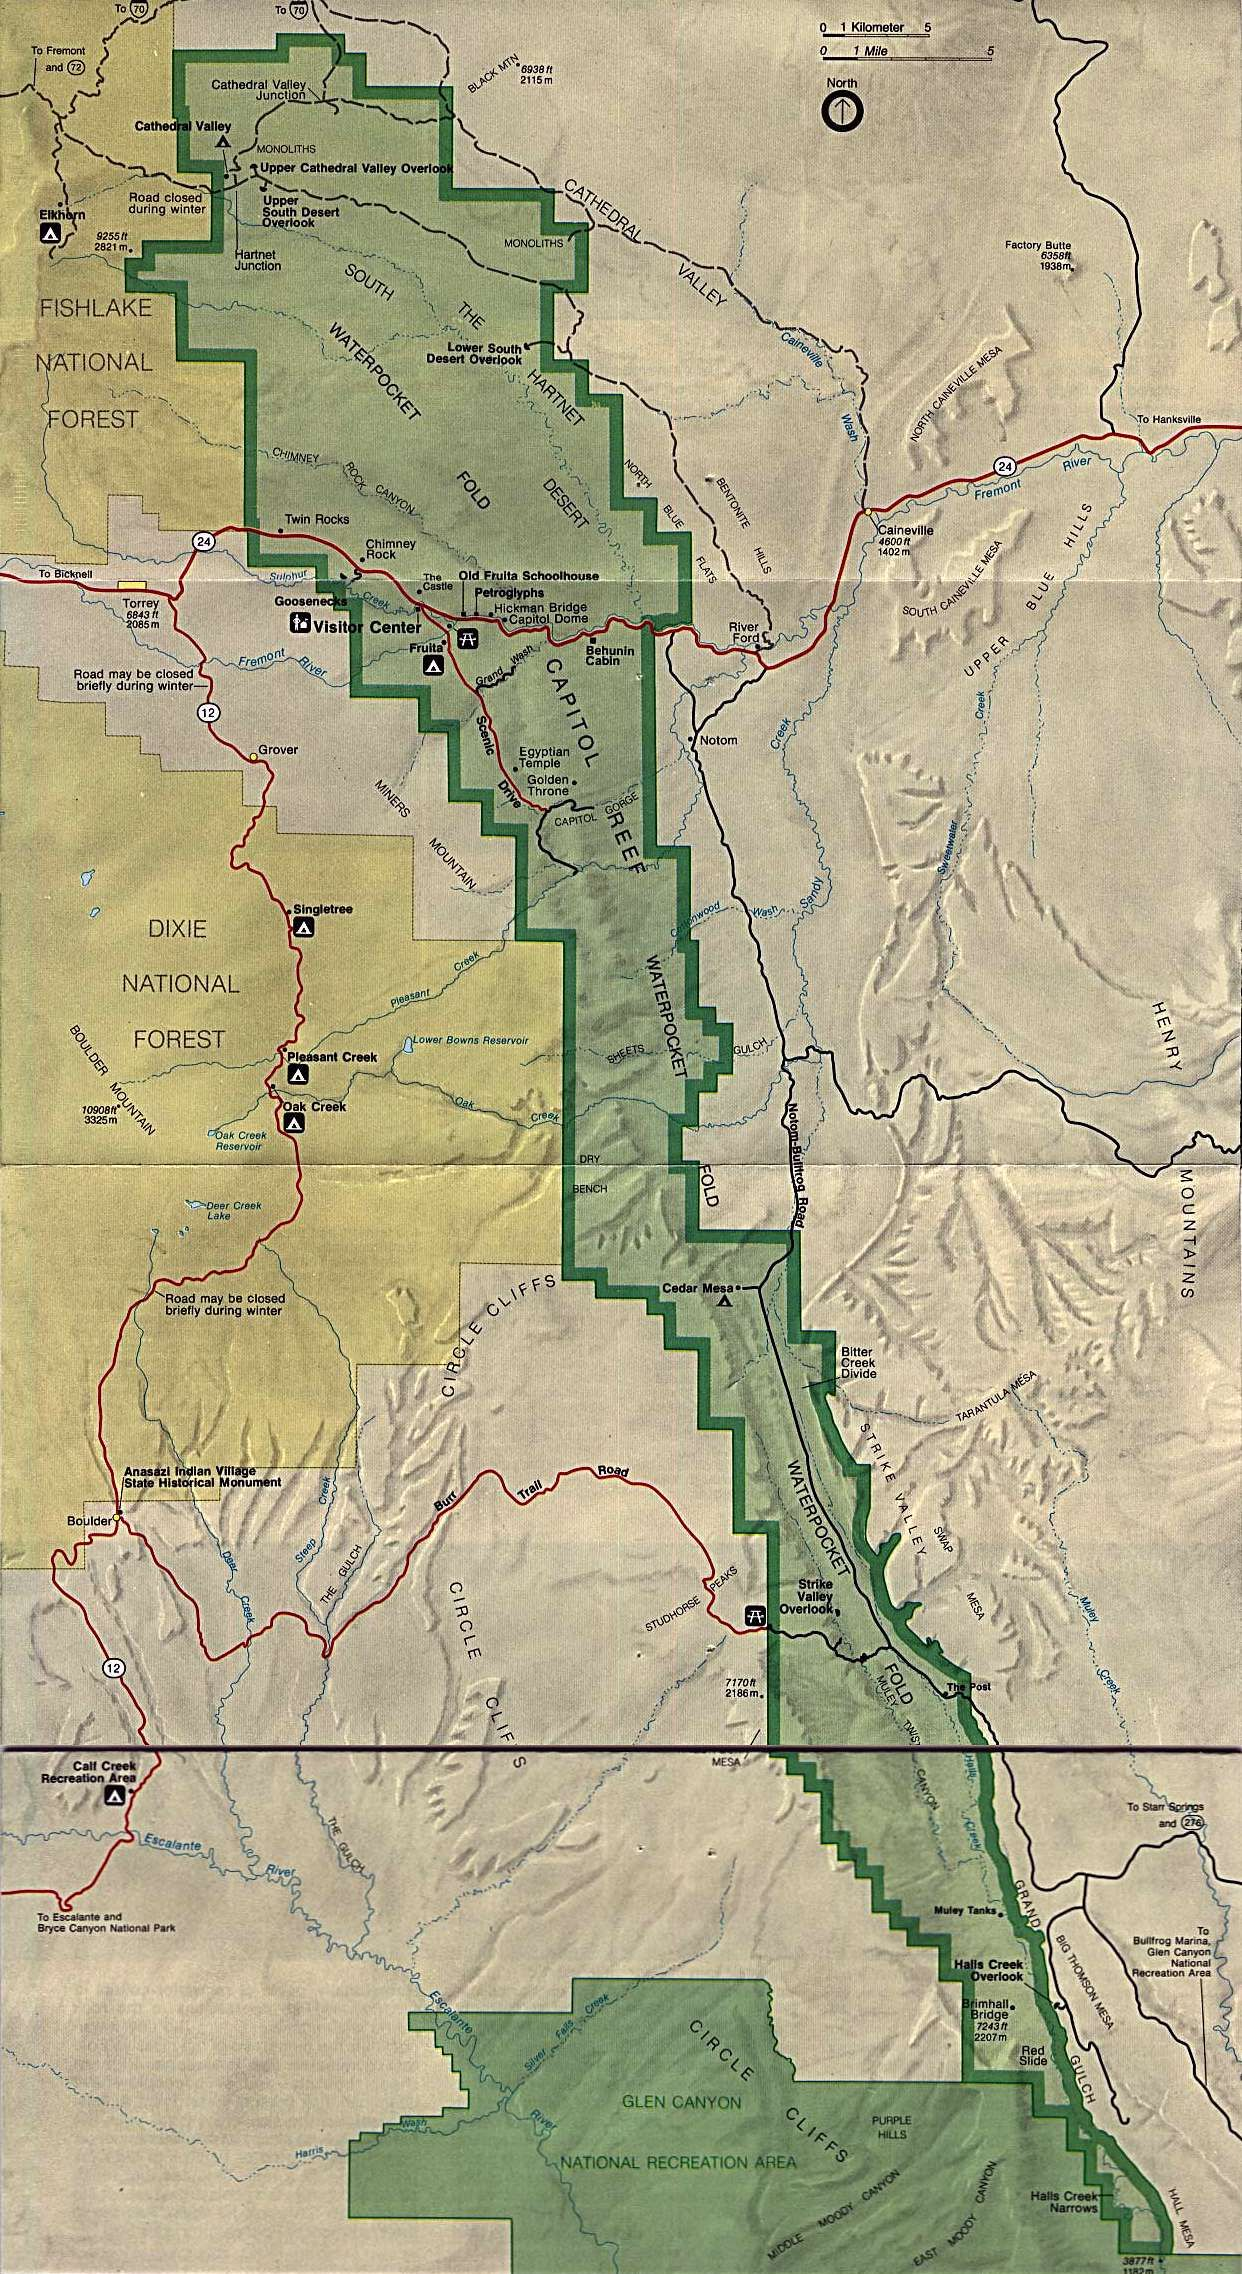 Capitol Reef National Park Map Page   Capital Reef National ... on yucca house national monument map, roosevelt park north dakota map, little bighorn battlefield national monument map, sequoia national park map, bryce canyon map, lake clark national park and preserve map, valley of fire state park map, kings canyon national park map, dead horse point state park map, hickman bridge capitol reef map, organ pipe cactus national monument map, lake powell map, monument valley map, chaco culture national historical park map, denali national park and preserve map, zion park shuttle map, u.s. capitol map, hawaii volcanoes national park map, canyon de chelly national monument map, canada national parks map,